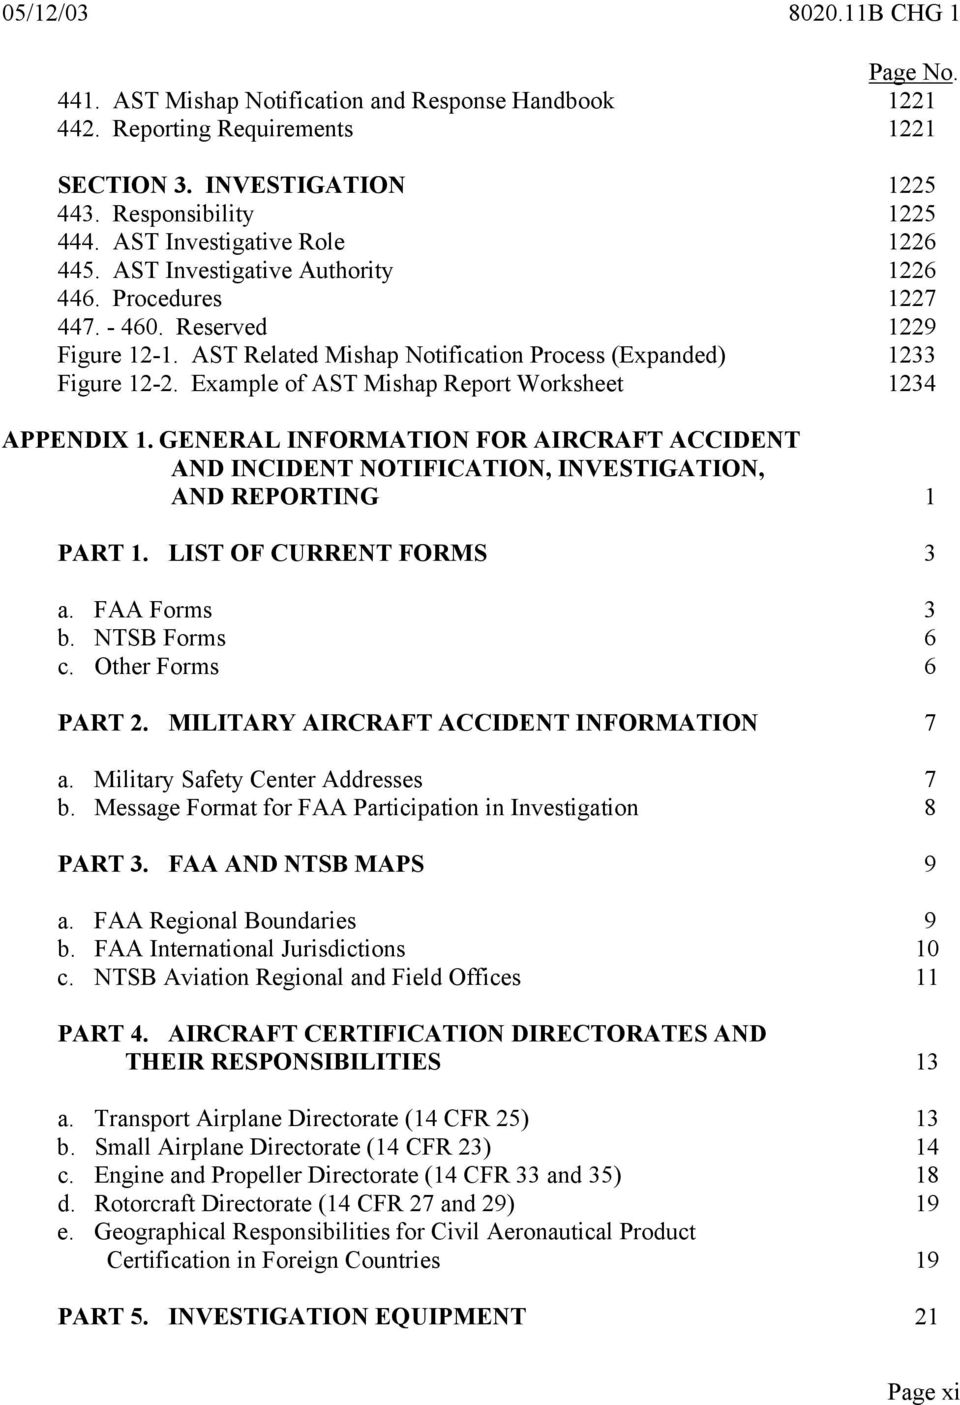 aircraft accident and incident notification  investigation